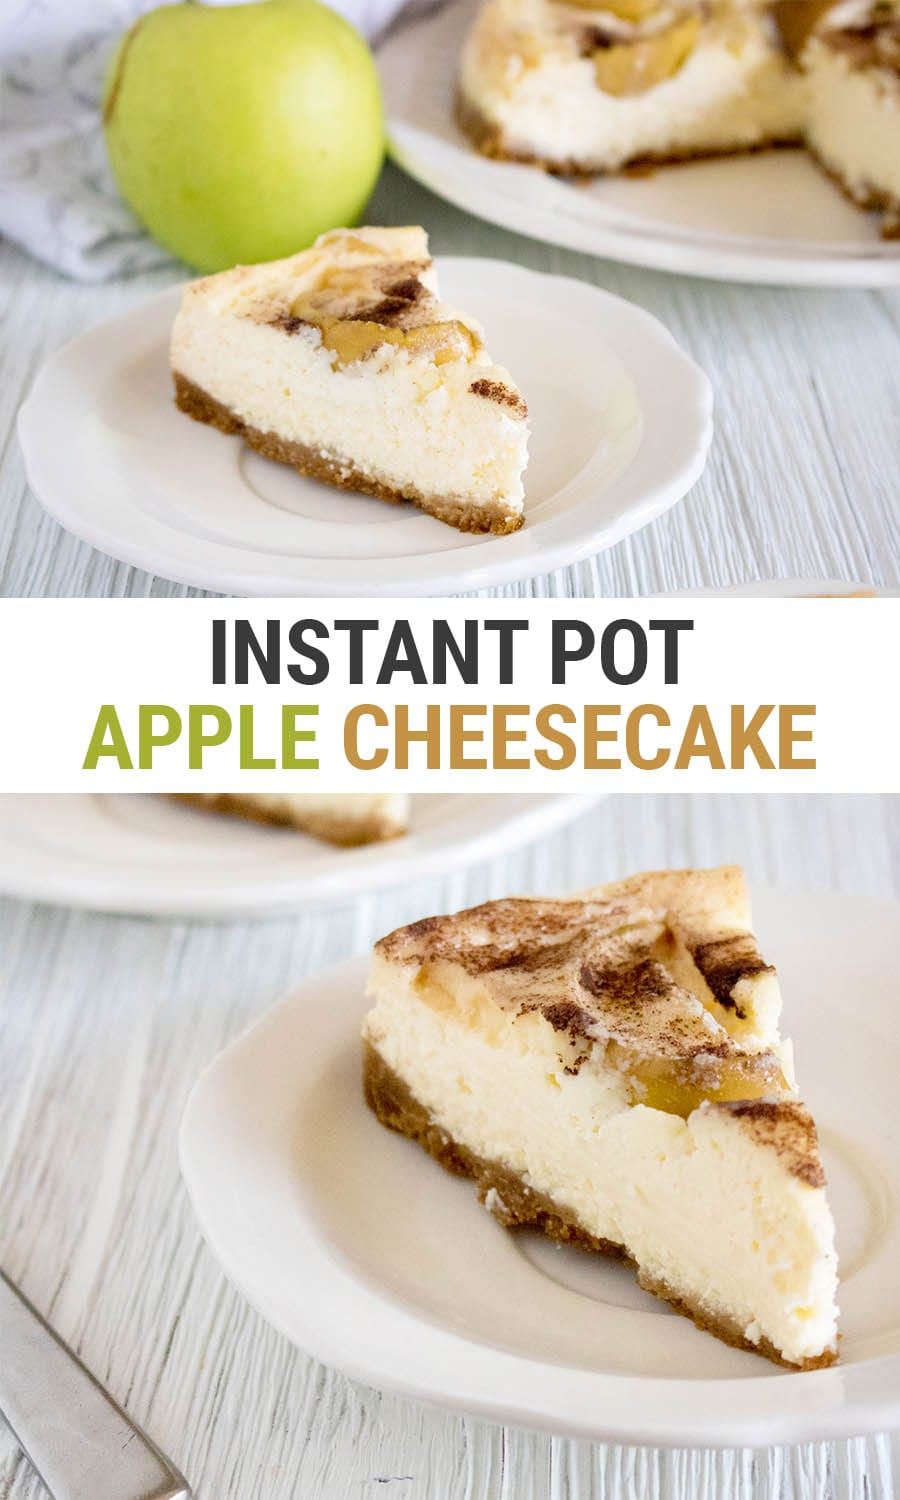 Instant Pot Apple Cheesecake Recipe